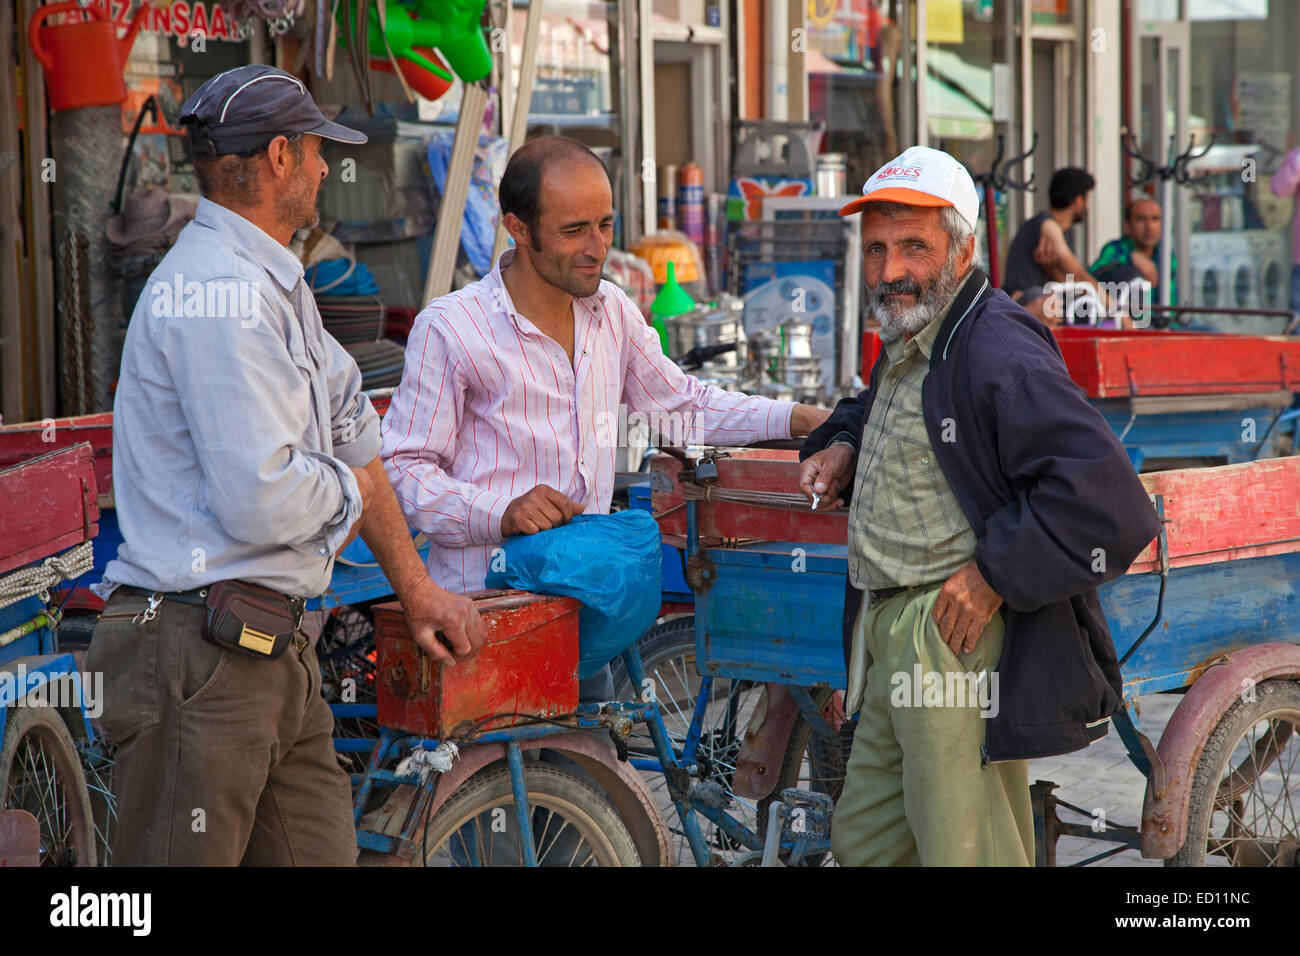 Turkish men chatting in a shopping street in the city Van, Eastern Turkey - Stock Image